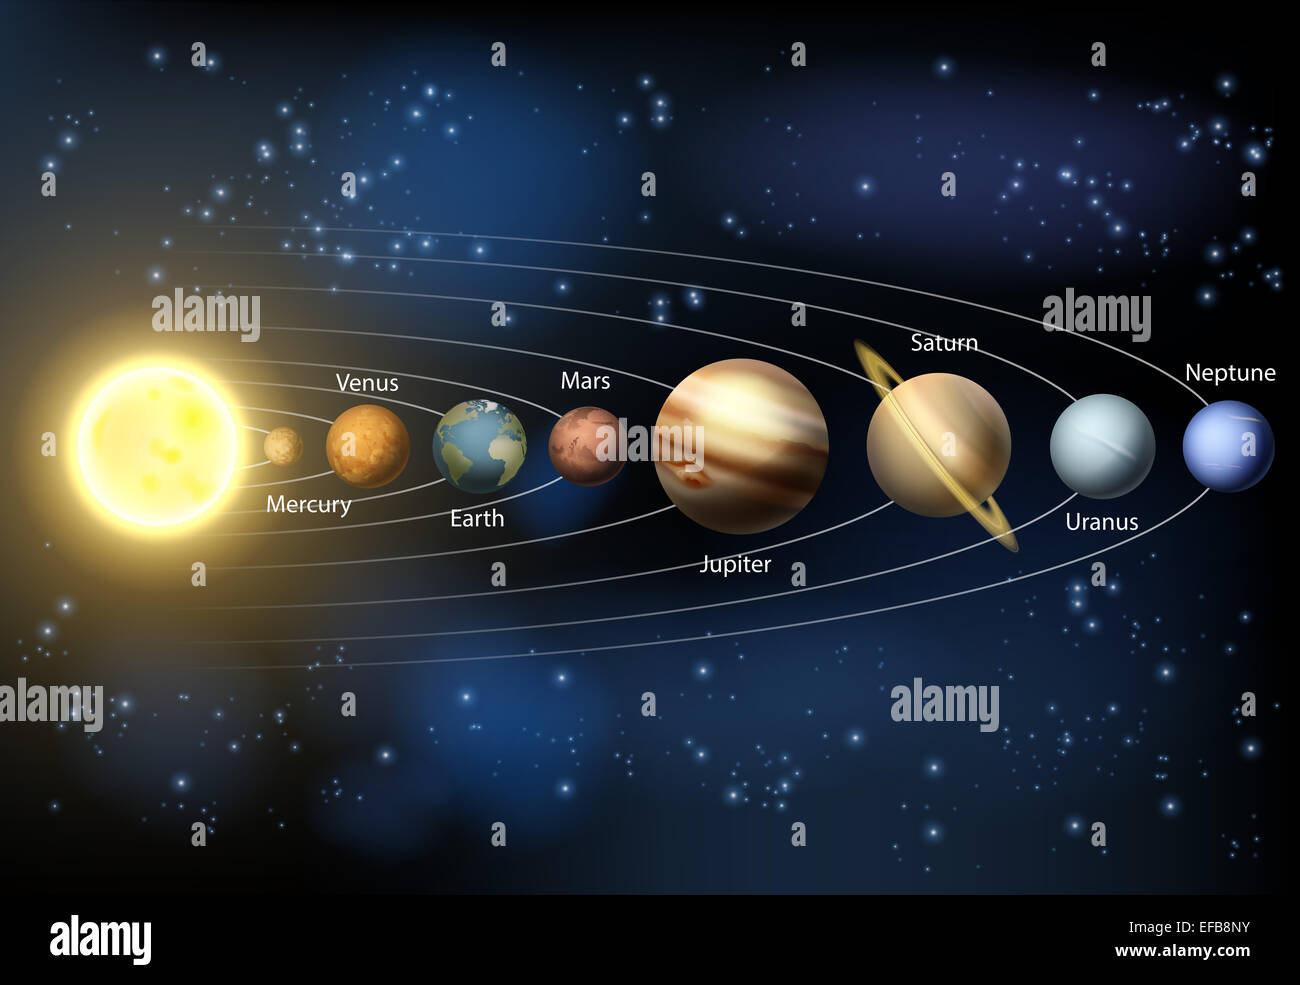 a diagram of the planets in our solar system with the planets names rh alamy com solar system diagram for kids solar system diagram labeled